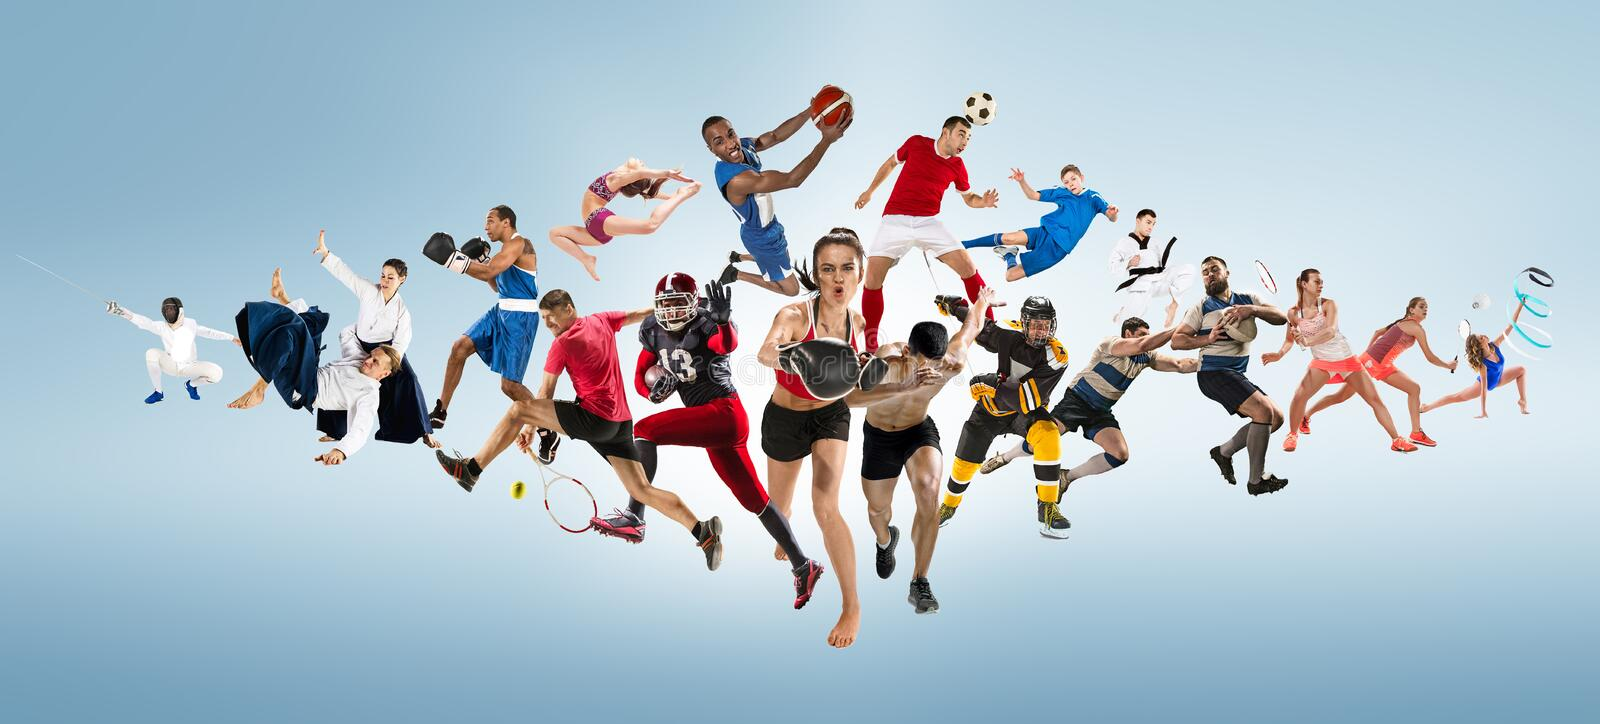 Sport collage about kickboxing, soccer, american football, basketball, ice hockey, badminton, taekwondo, tennis, rugby stock image